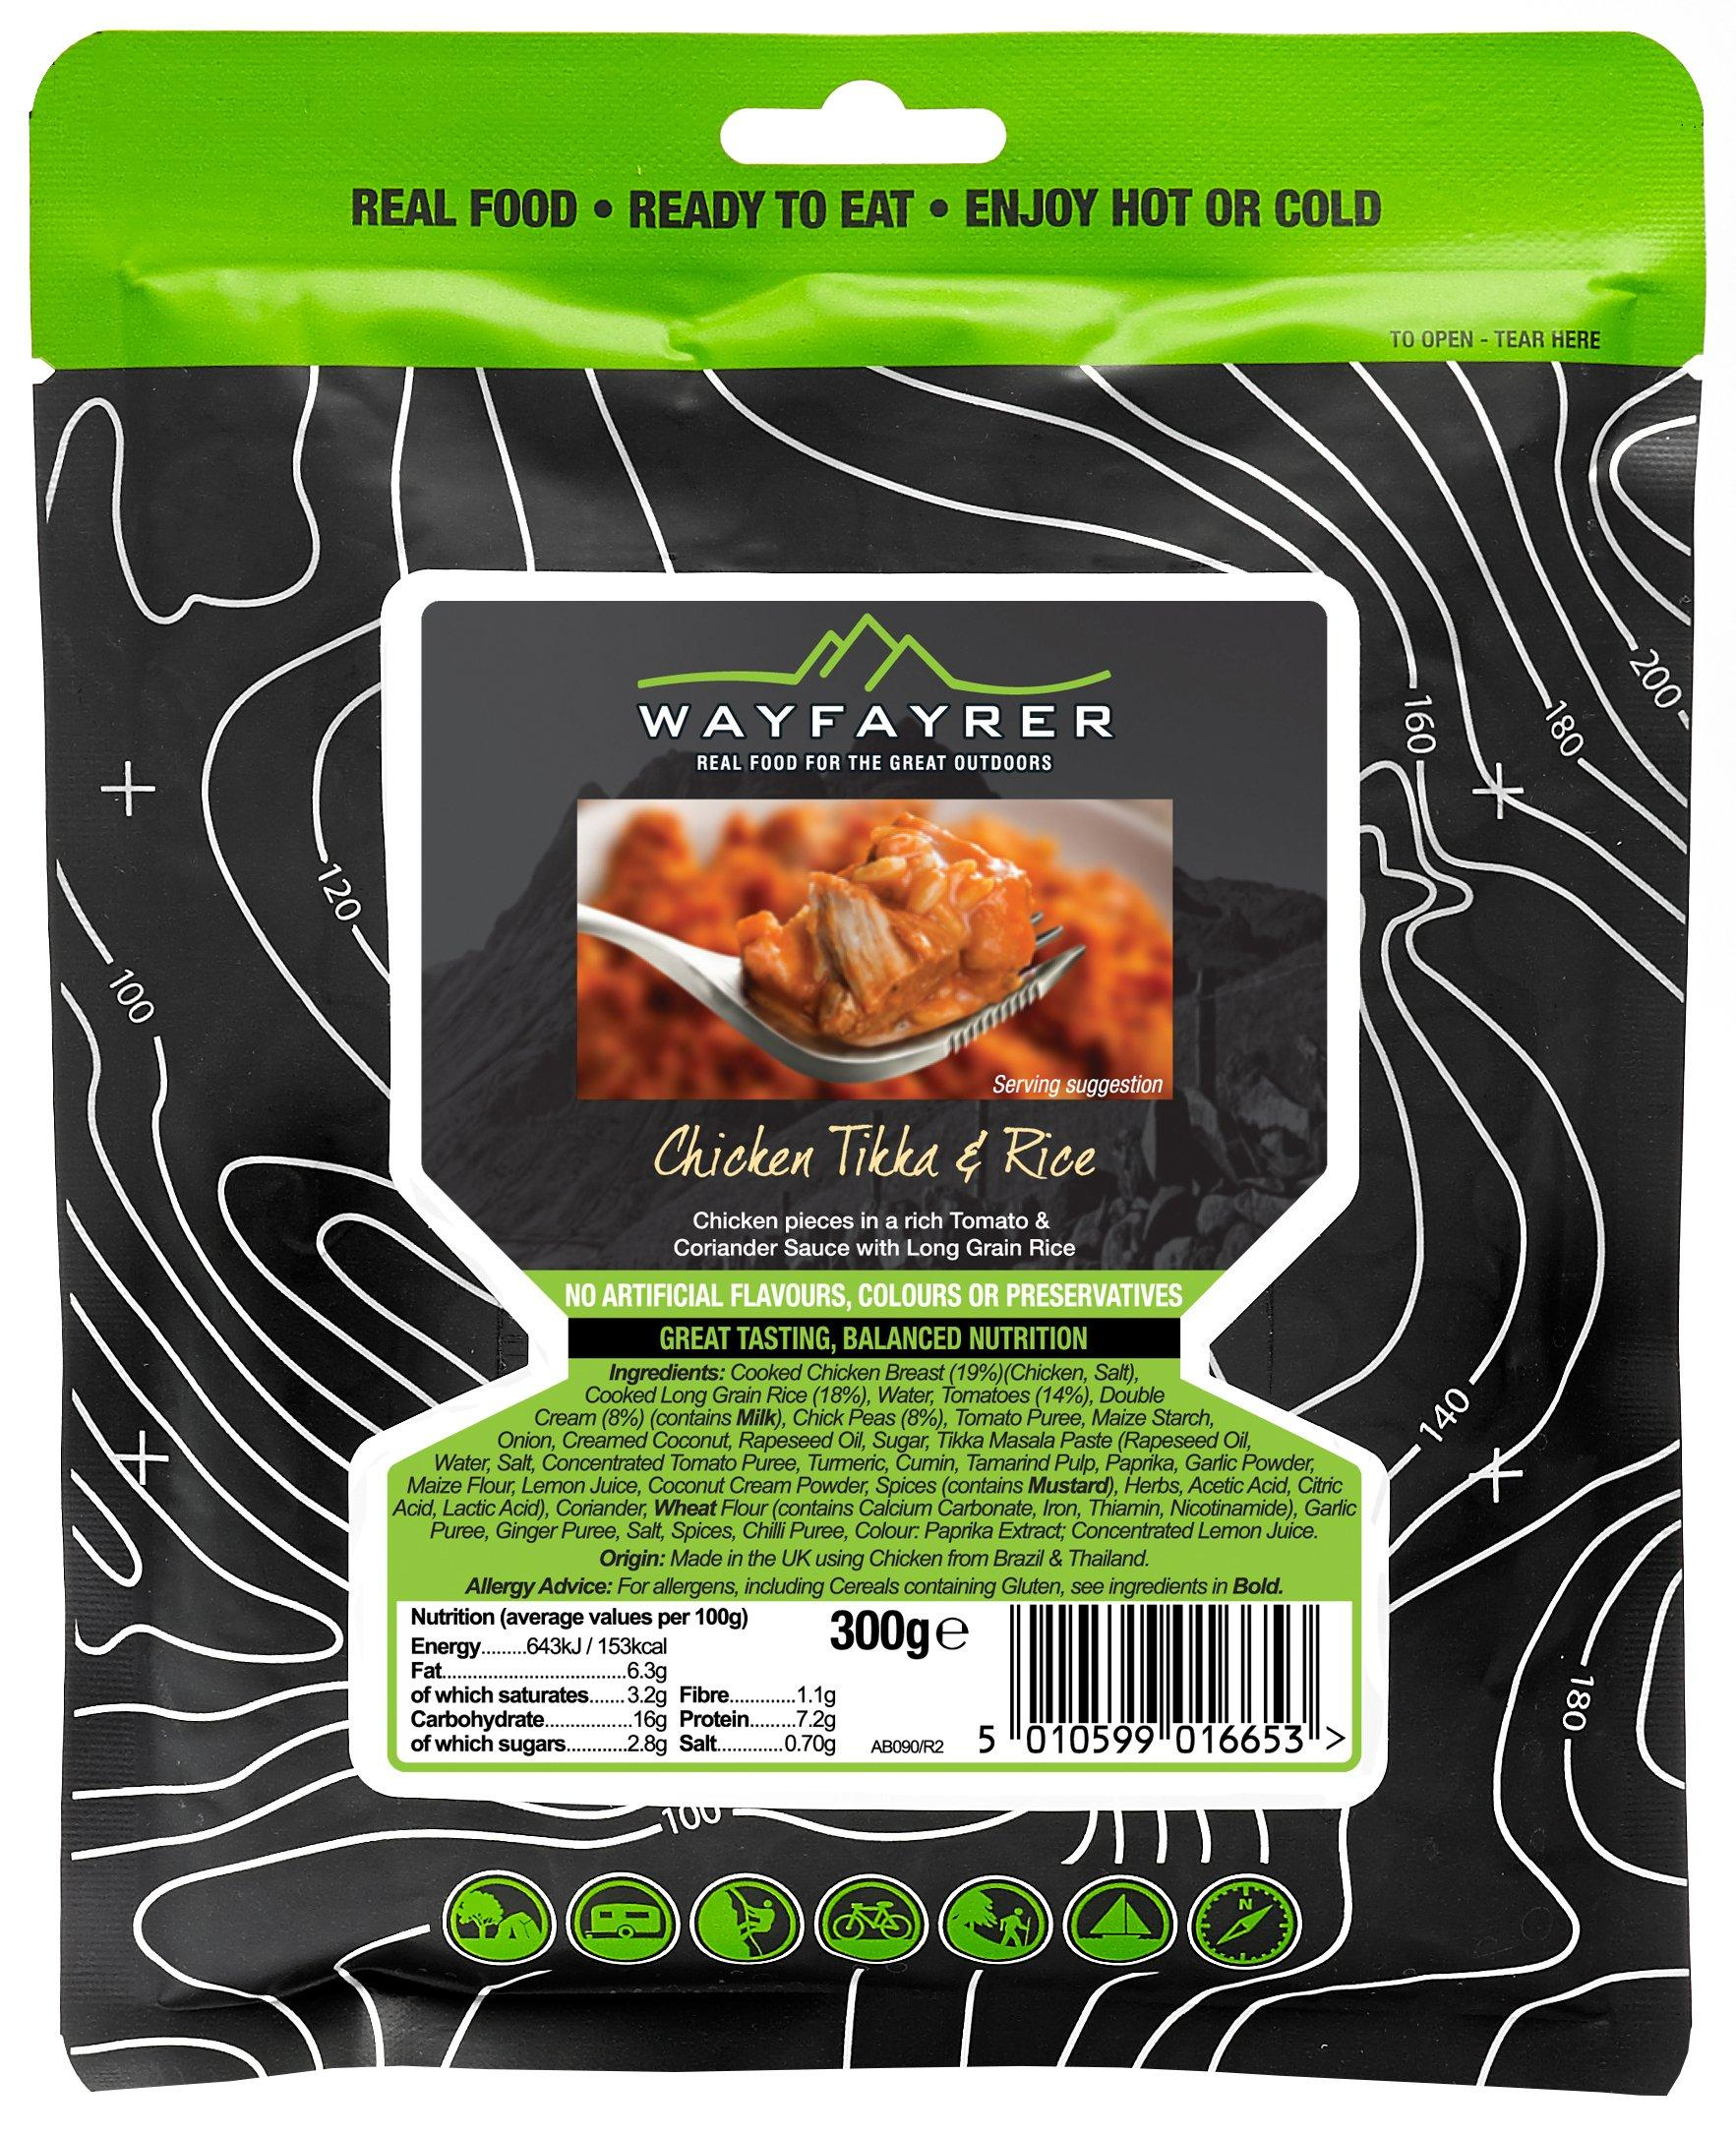 Wayfayrer Chicken Tikka Masala And Rice Assorted One Size Parcel Ketupat Check Listing For Latest Price